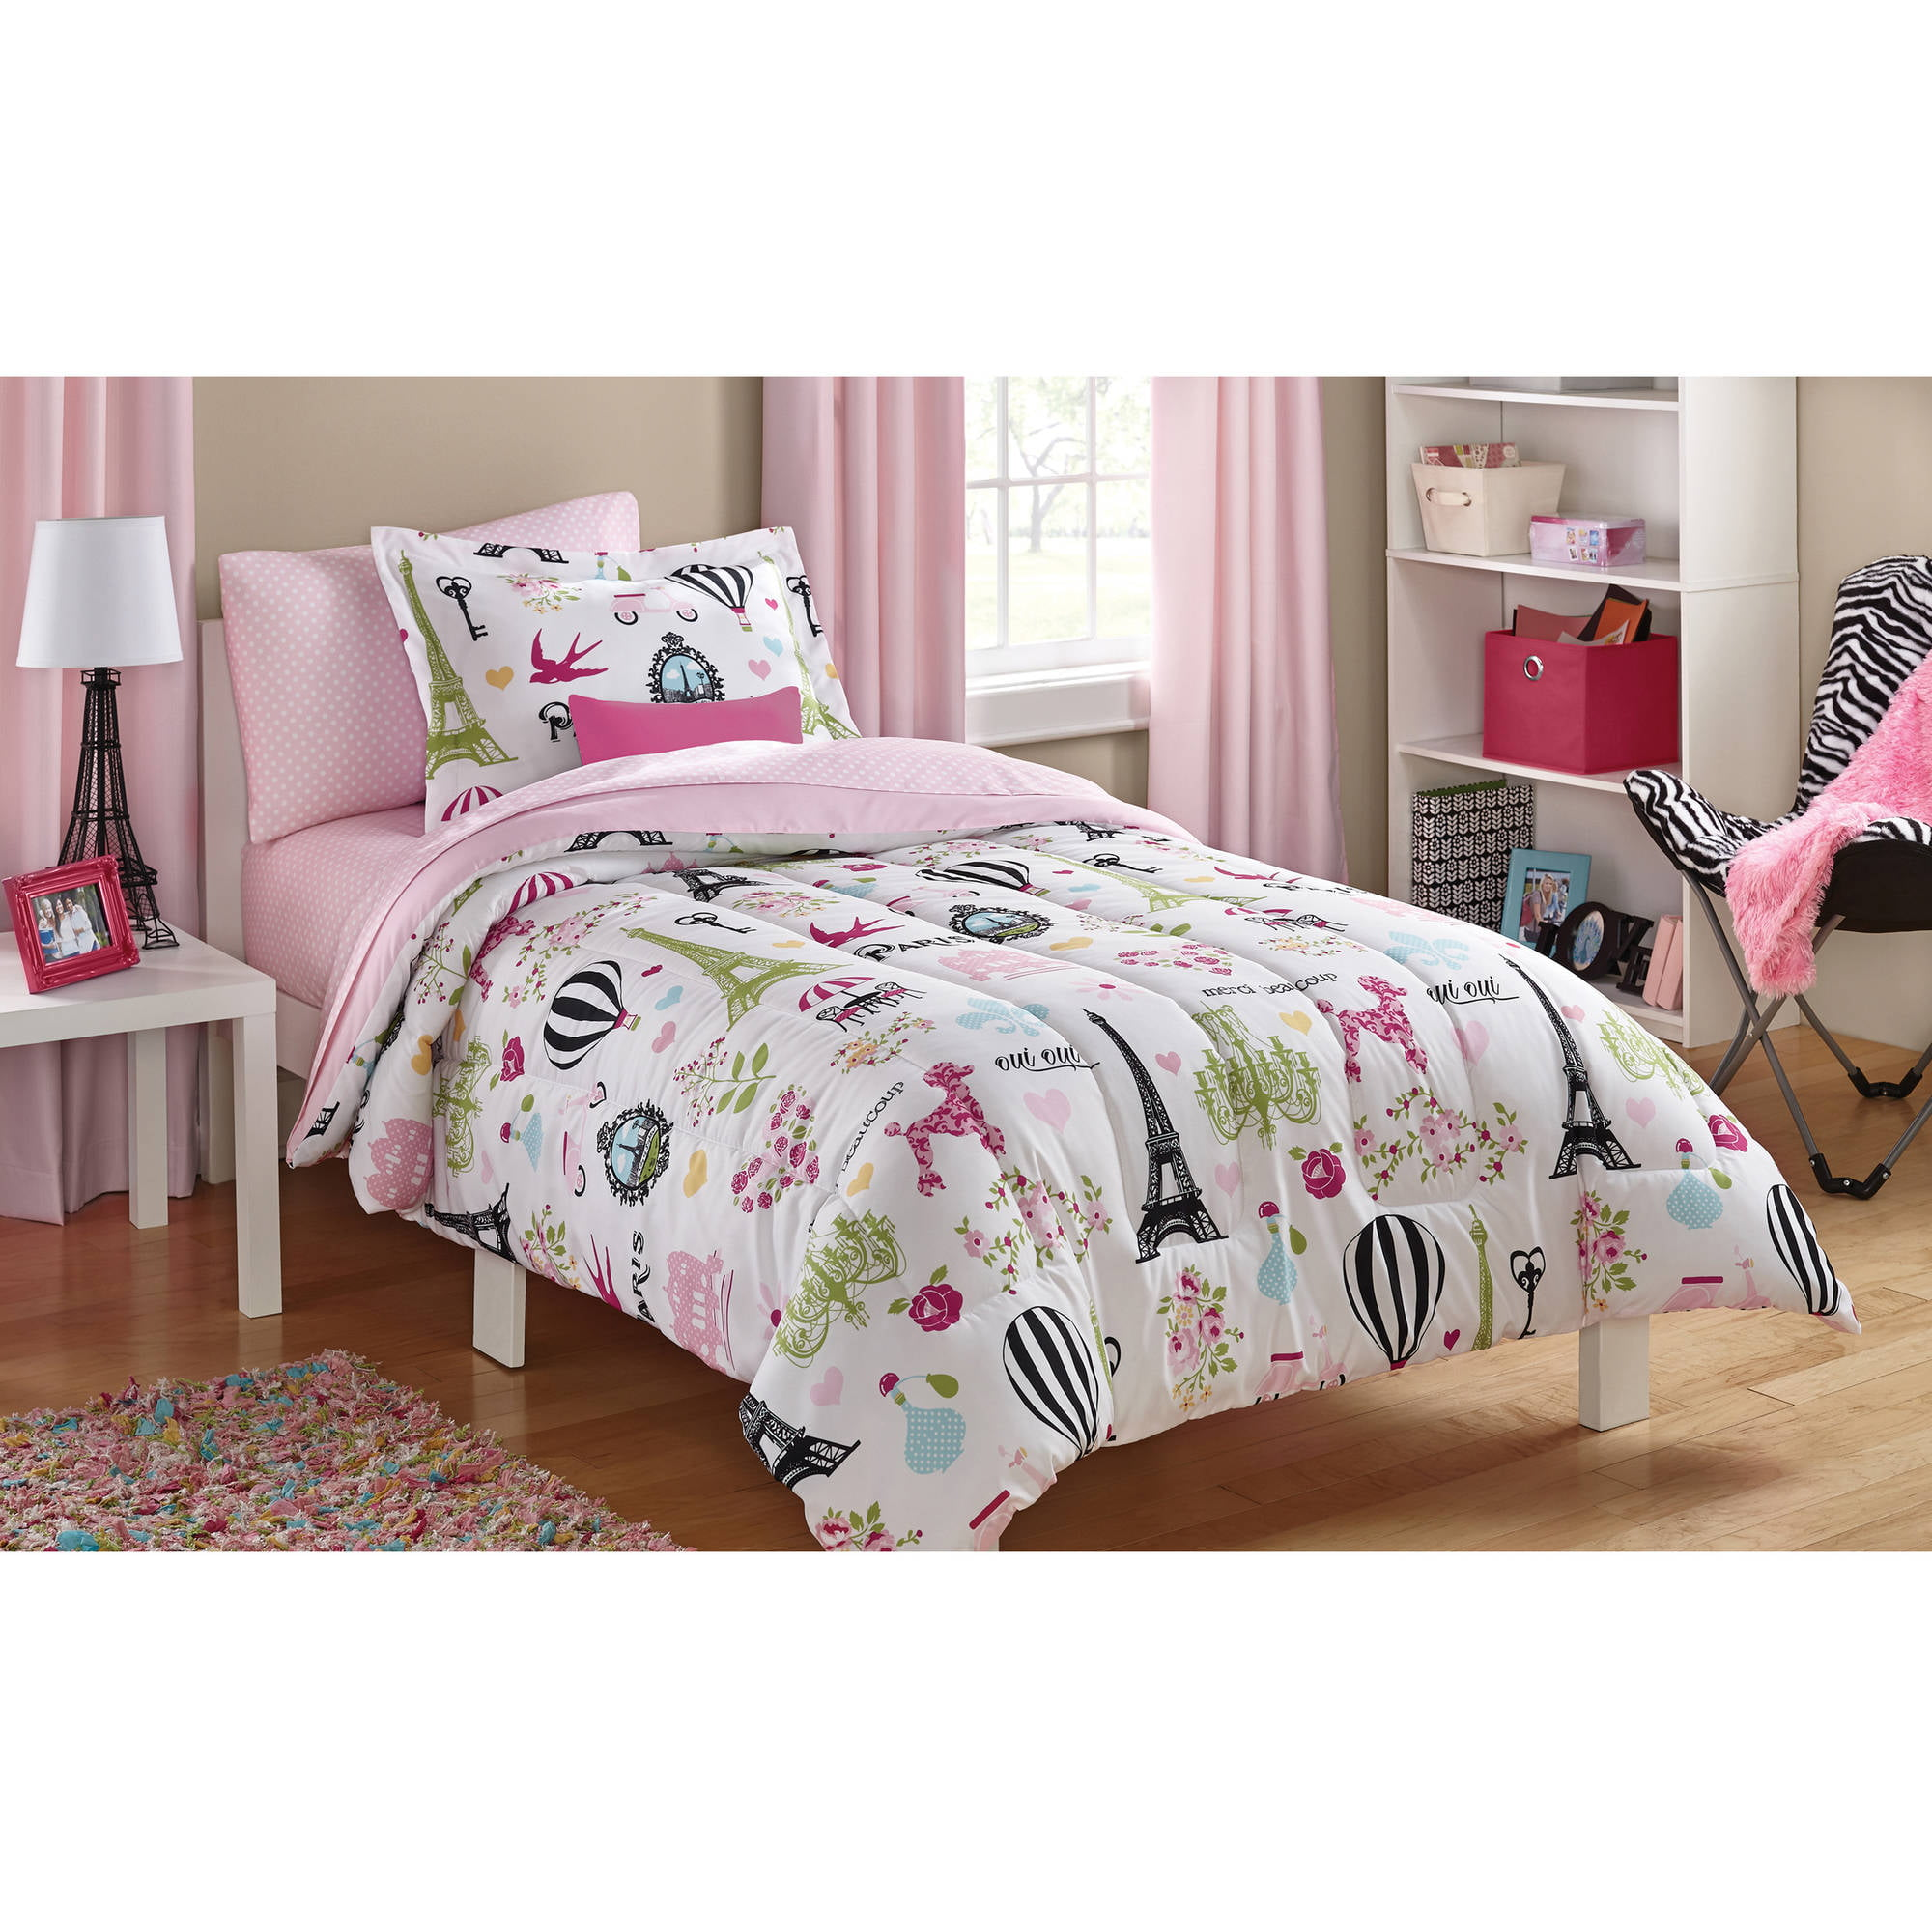 Black and white bedding walmart - Black And White Bedding Walmart 34